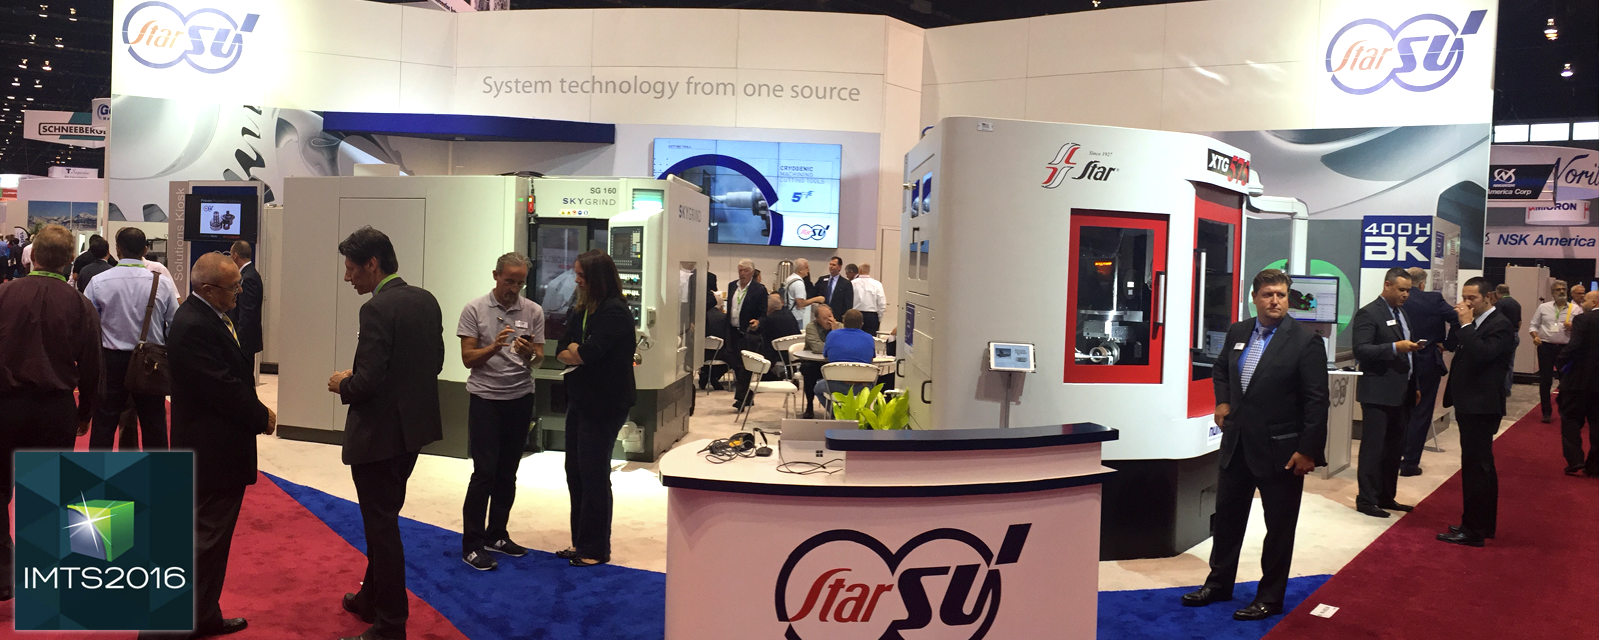 NetCrafters at IMTS